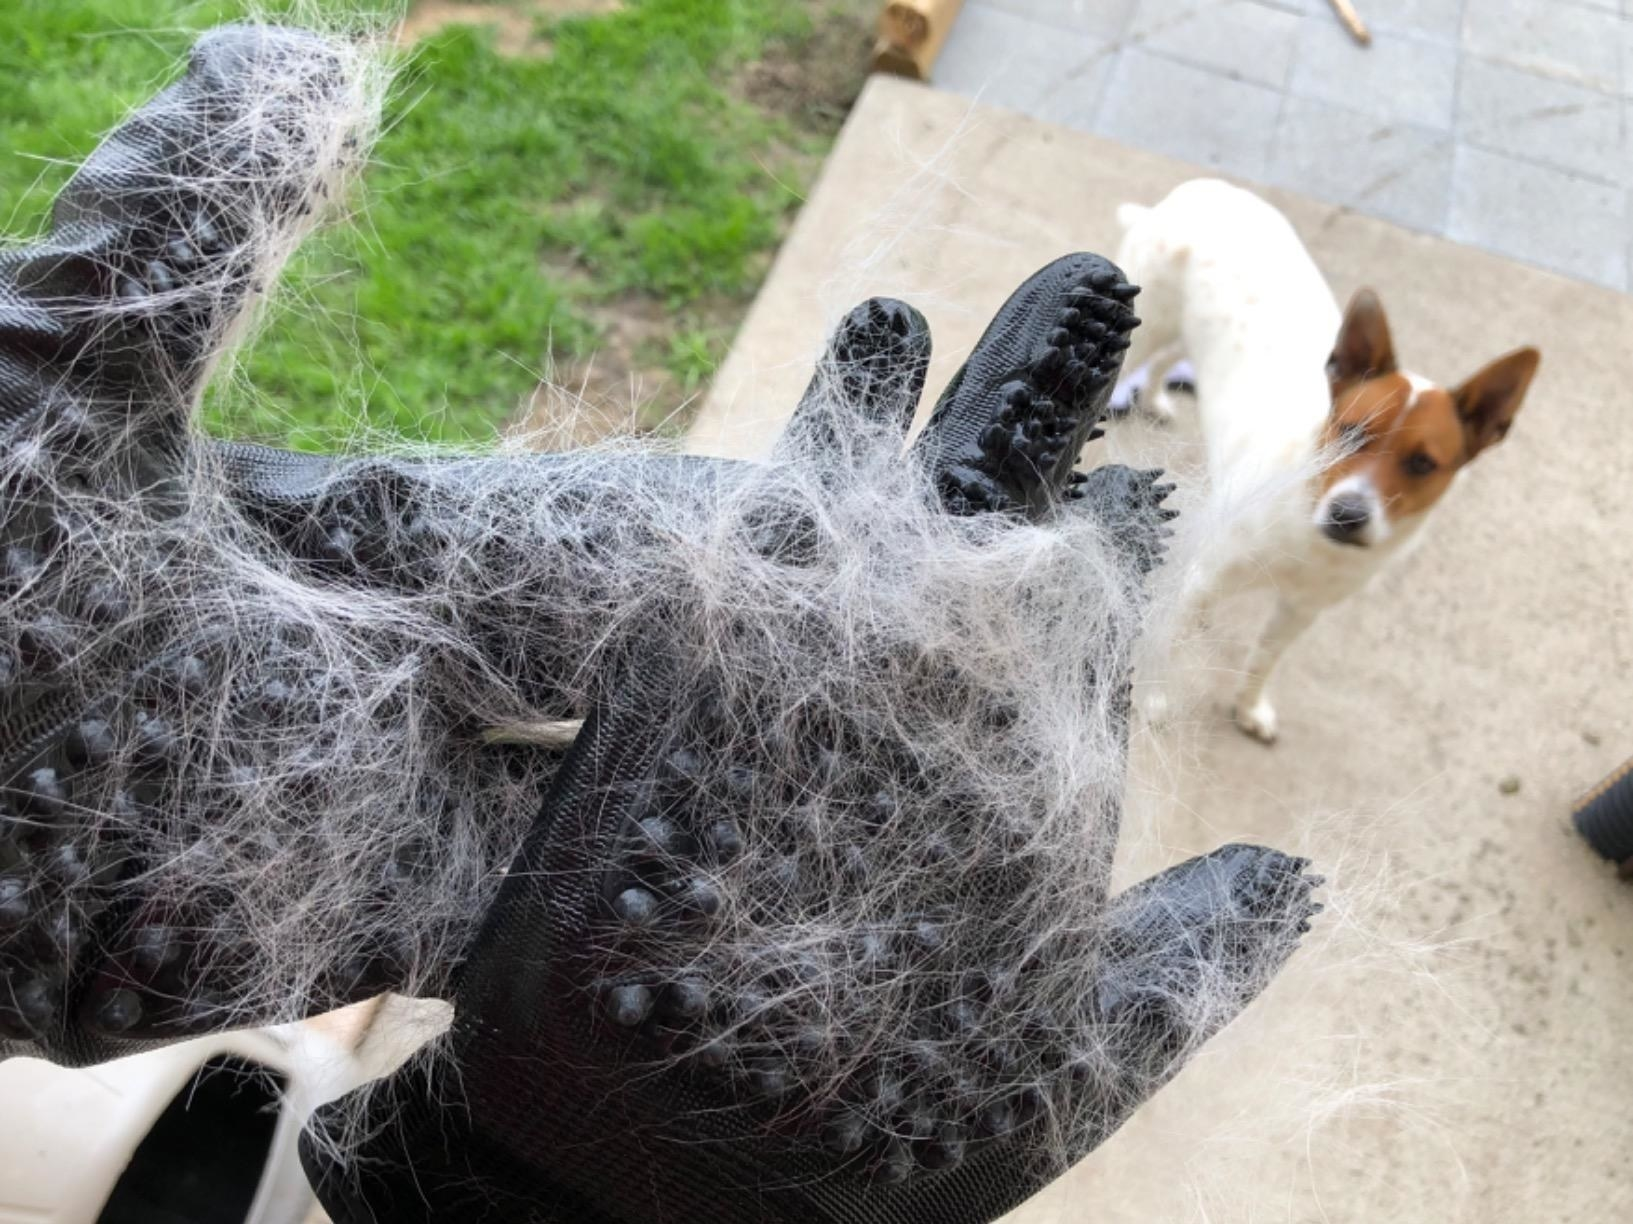 A reviewer shows off how much hair came off their dog petting it with the gloves on for just a few seconds